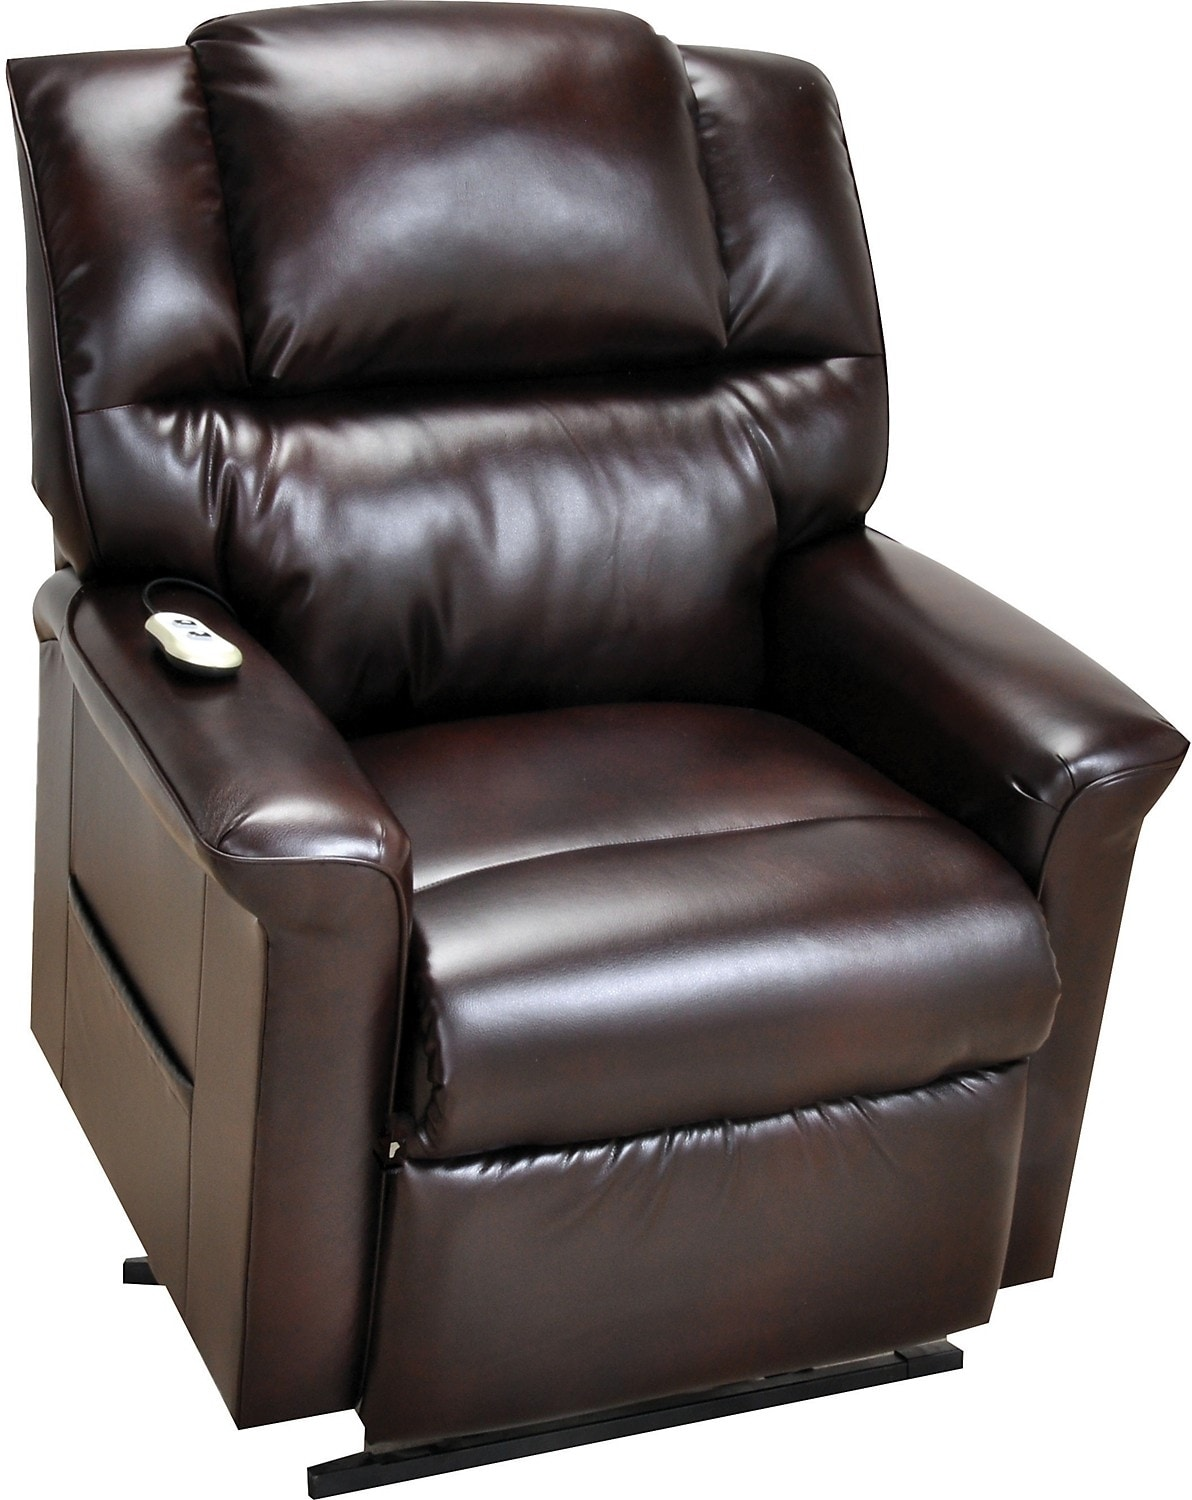 Leather Lift Chair Recliners Wessex Leather Electric